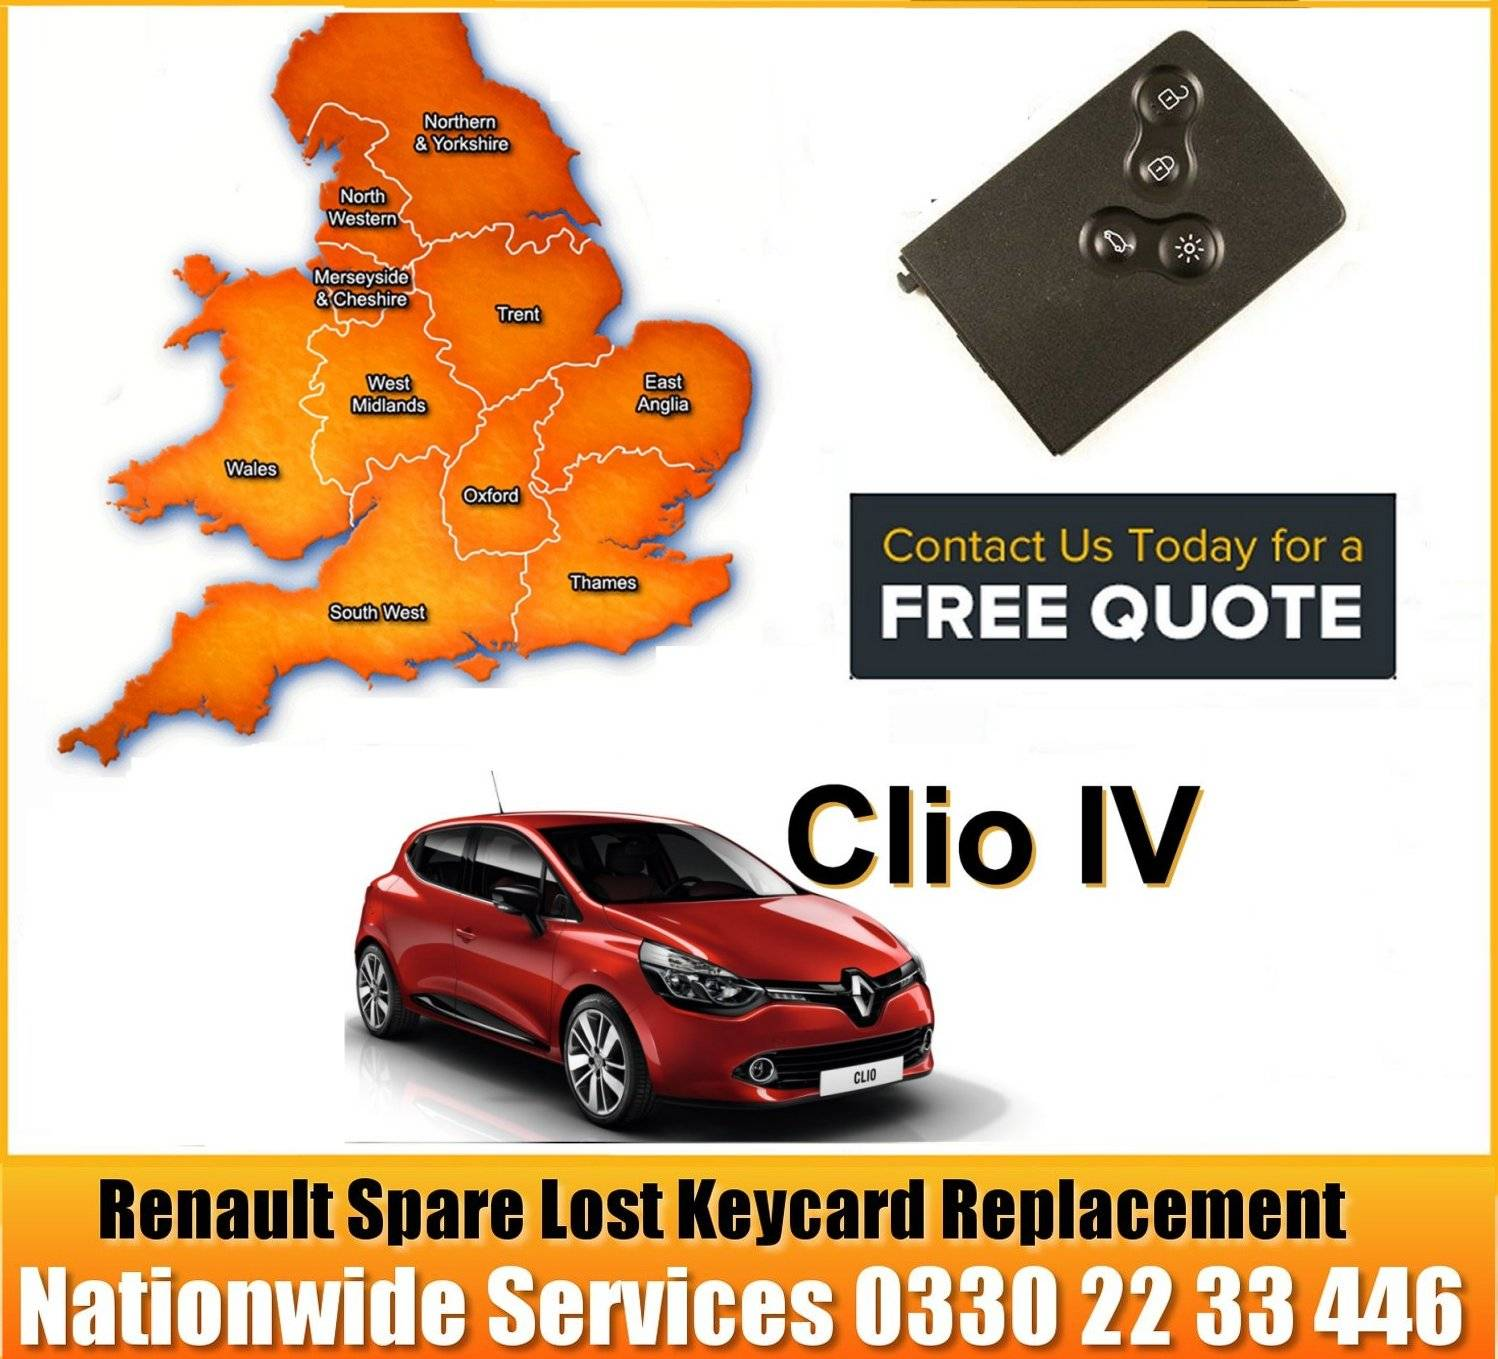 Renault Replacement Remote Key Card Ward name Belah Belle Vue Botcherby Brampton Burgh Castle Currock Dalston Denton Holme Great Corby and Geltsdale Harraby Hayton Irthing Longtown and Rockcliffe Lyne Morton St Aidans Stanwix Rural Stanwix Urban Upperby Wetheral Yewdale